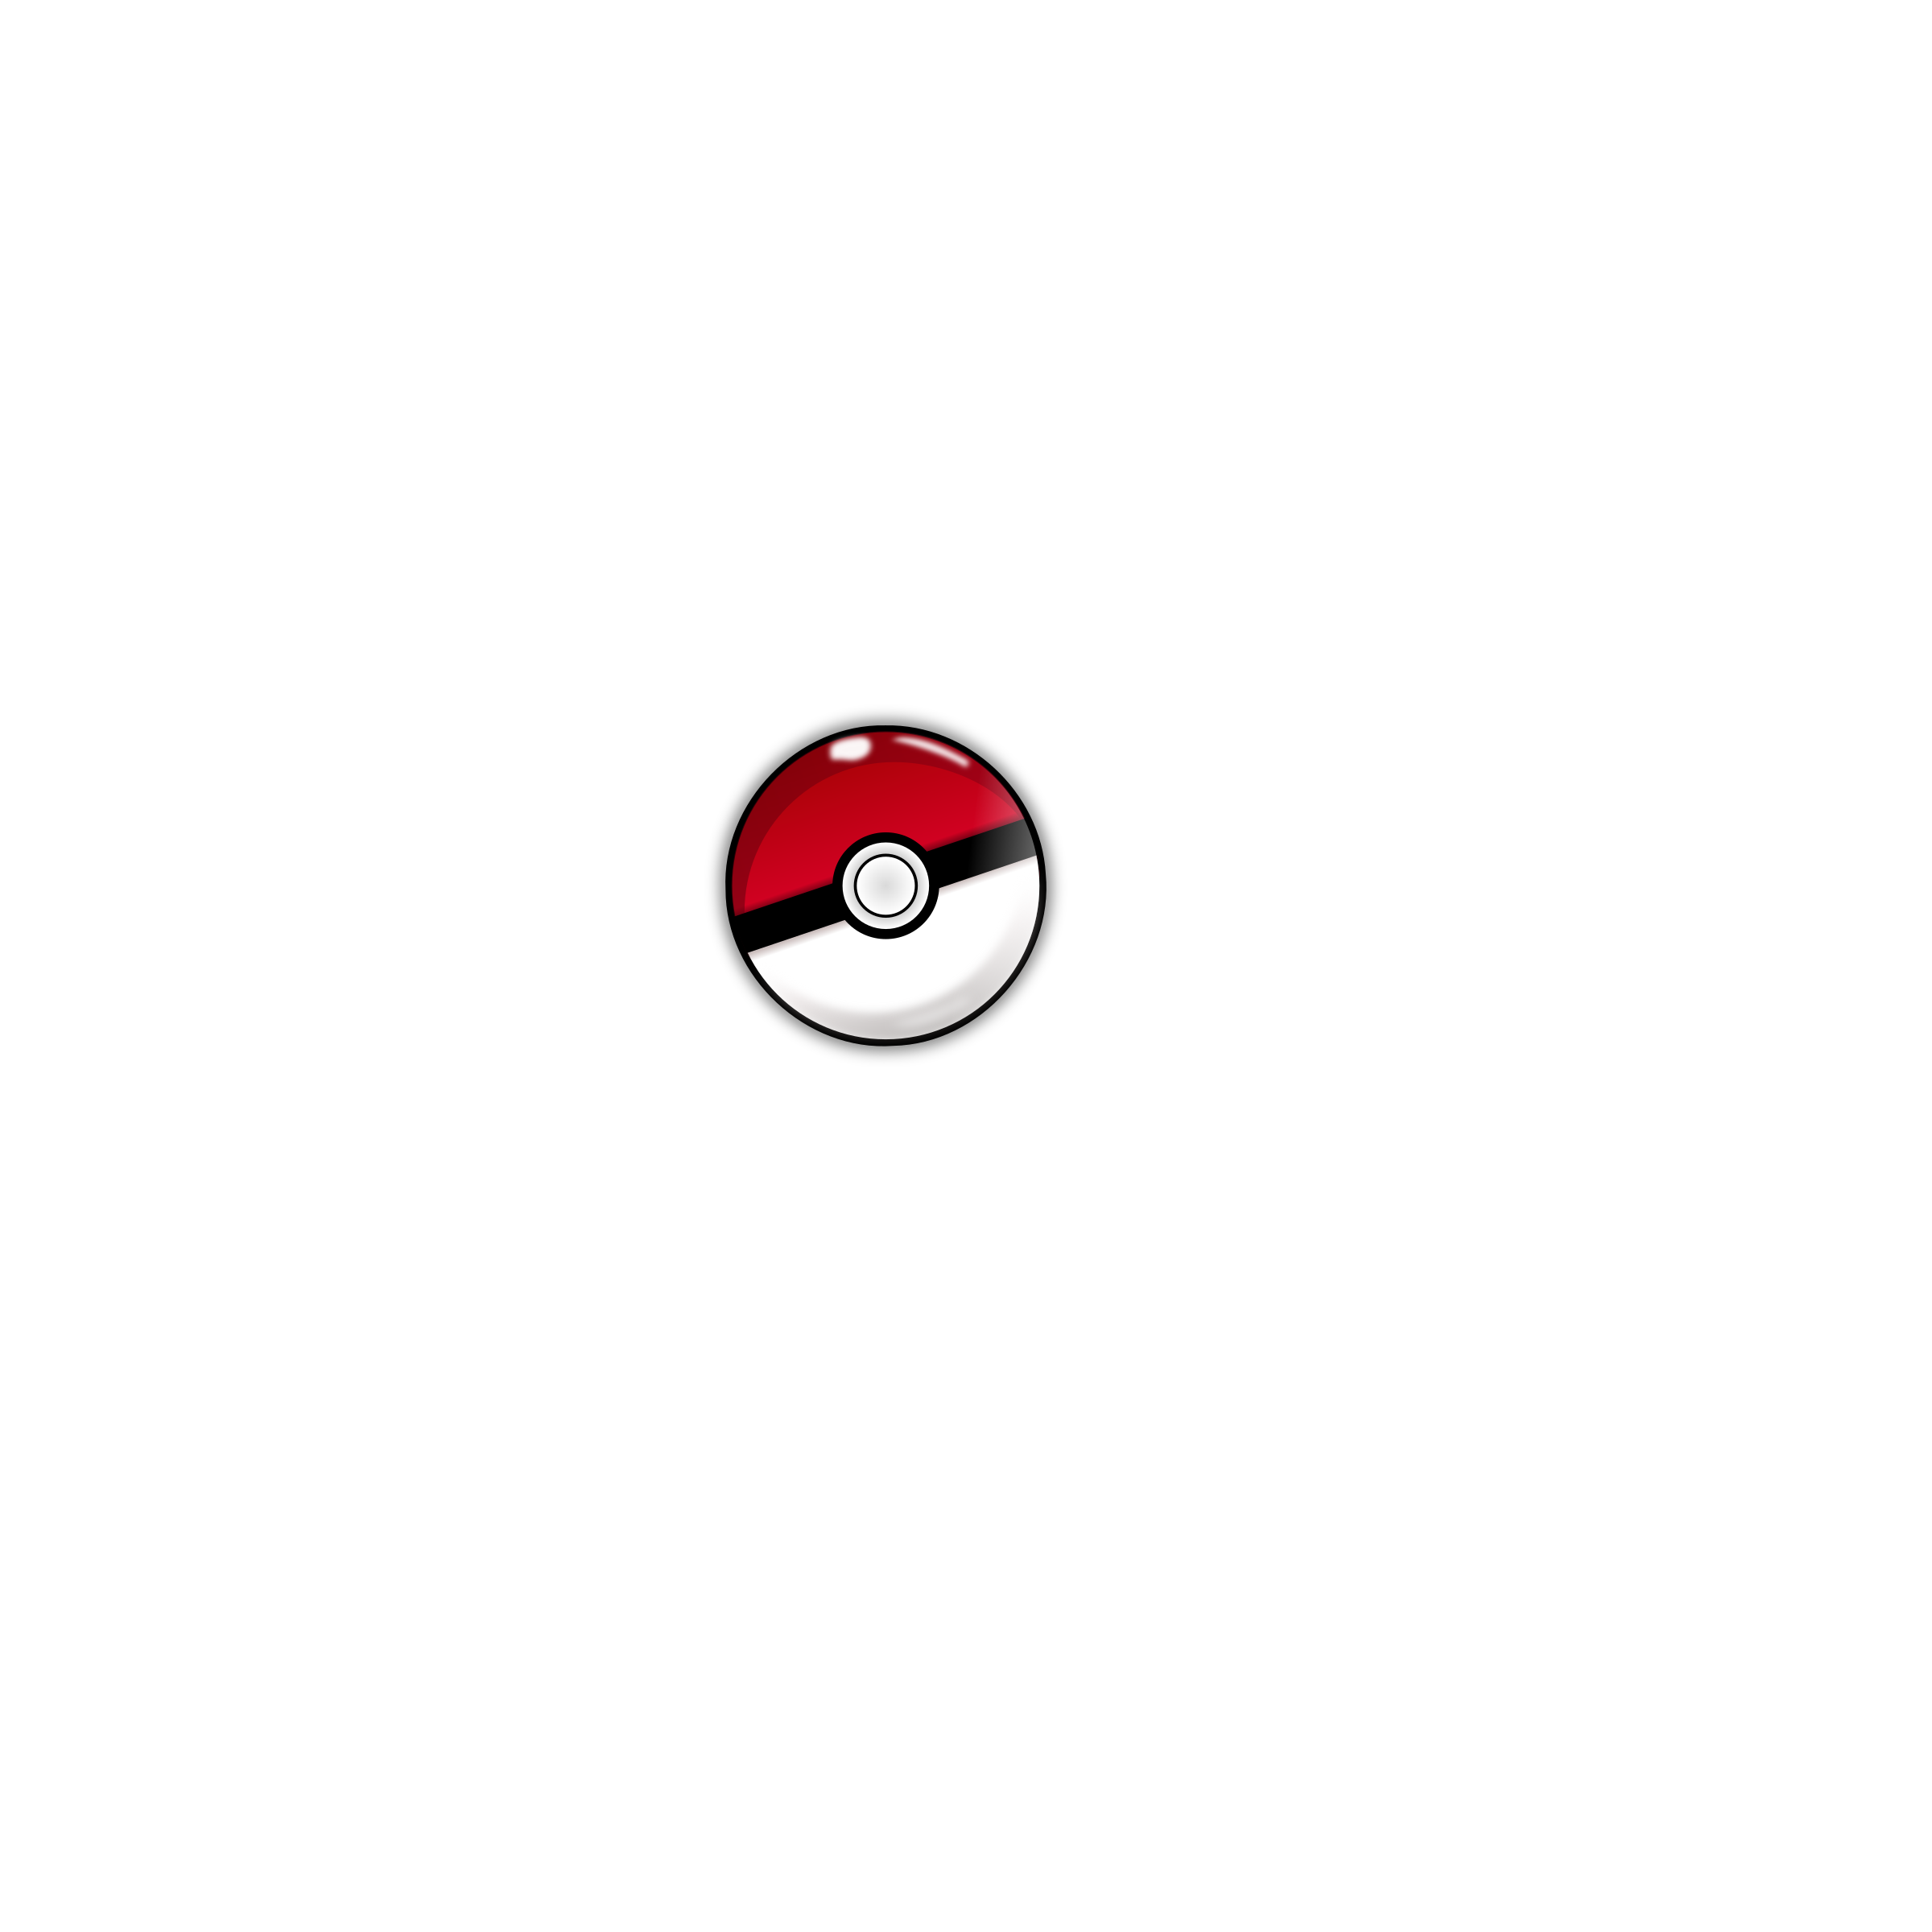 Icon big image png. Pokeball clipart